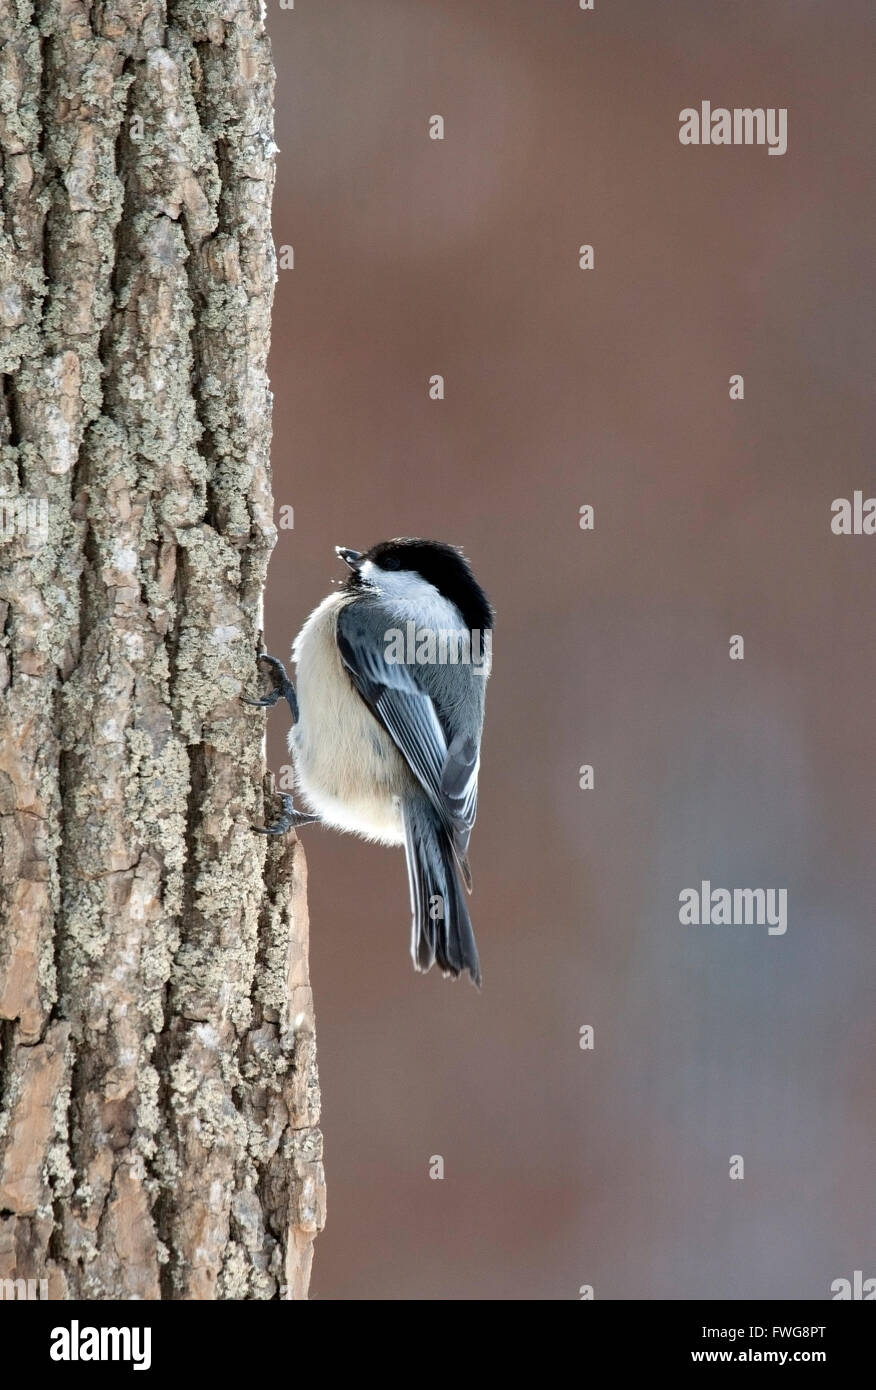 Black capped chickadee clings to tree trunk - Stock Image